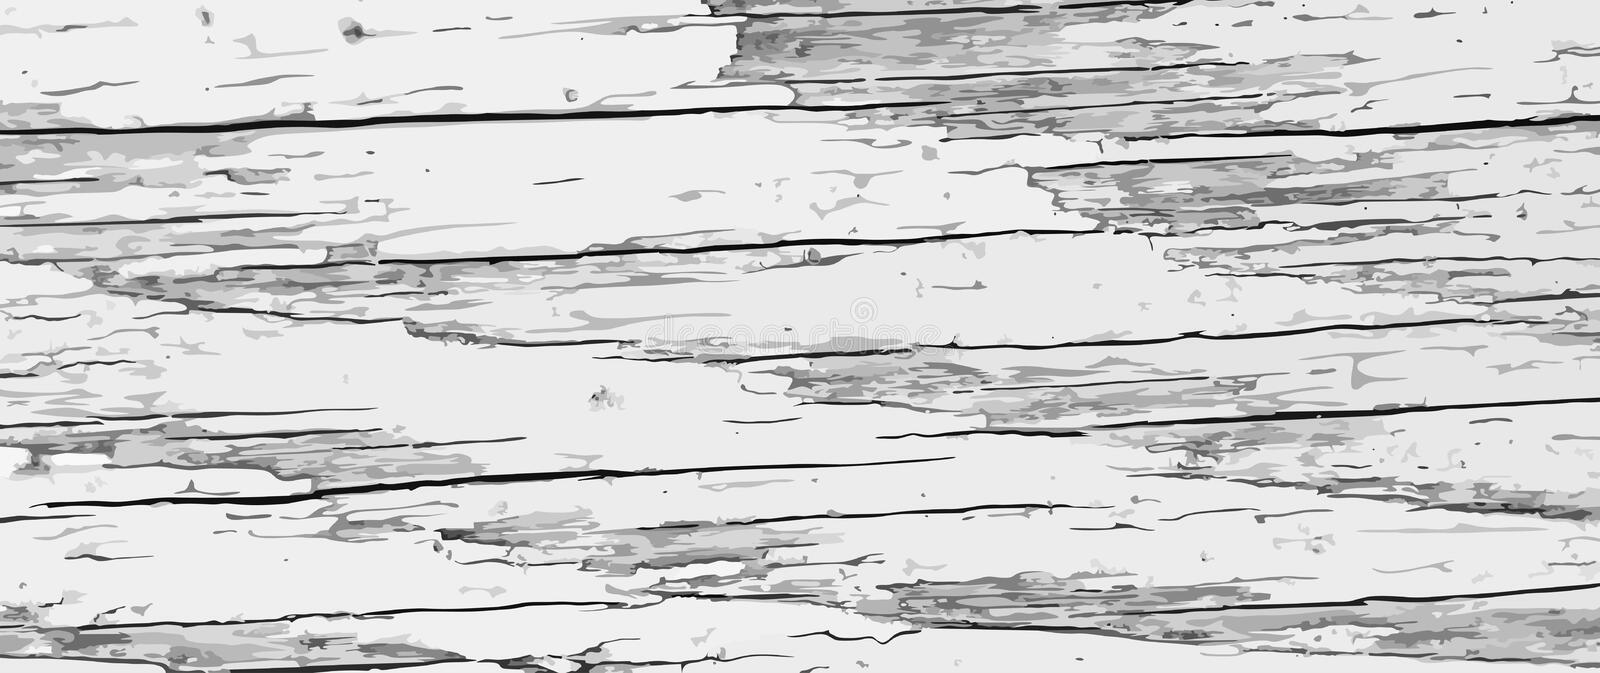 Painted rough wooden background. Vector texture of cracked wood plank. royalty free illustration